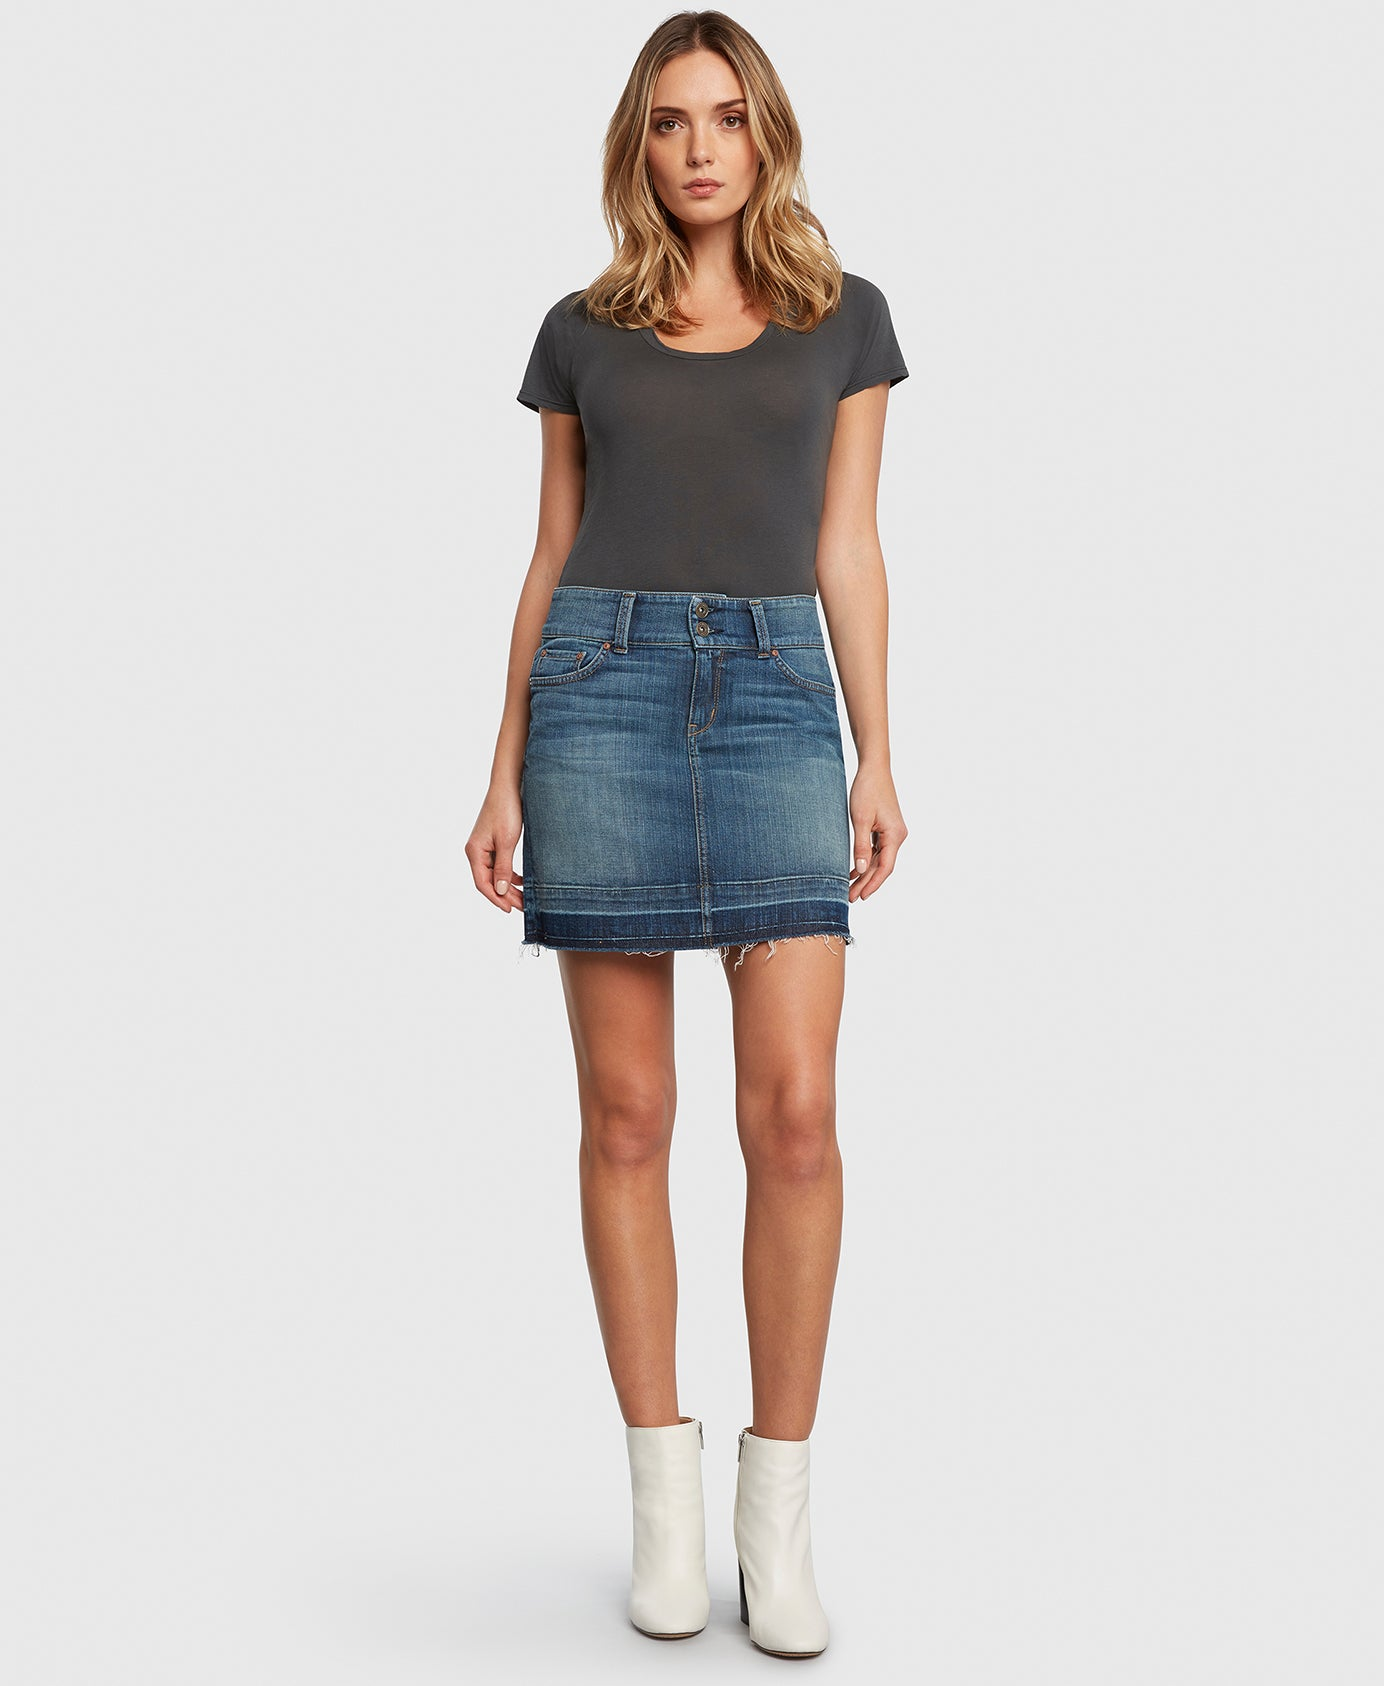 Principle denim skirt with double button waistband